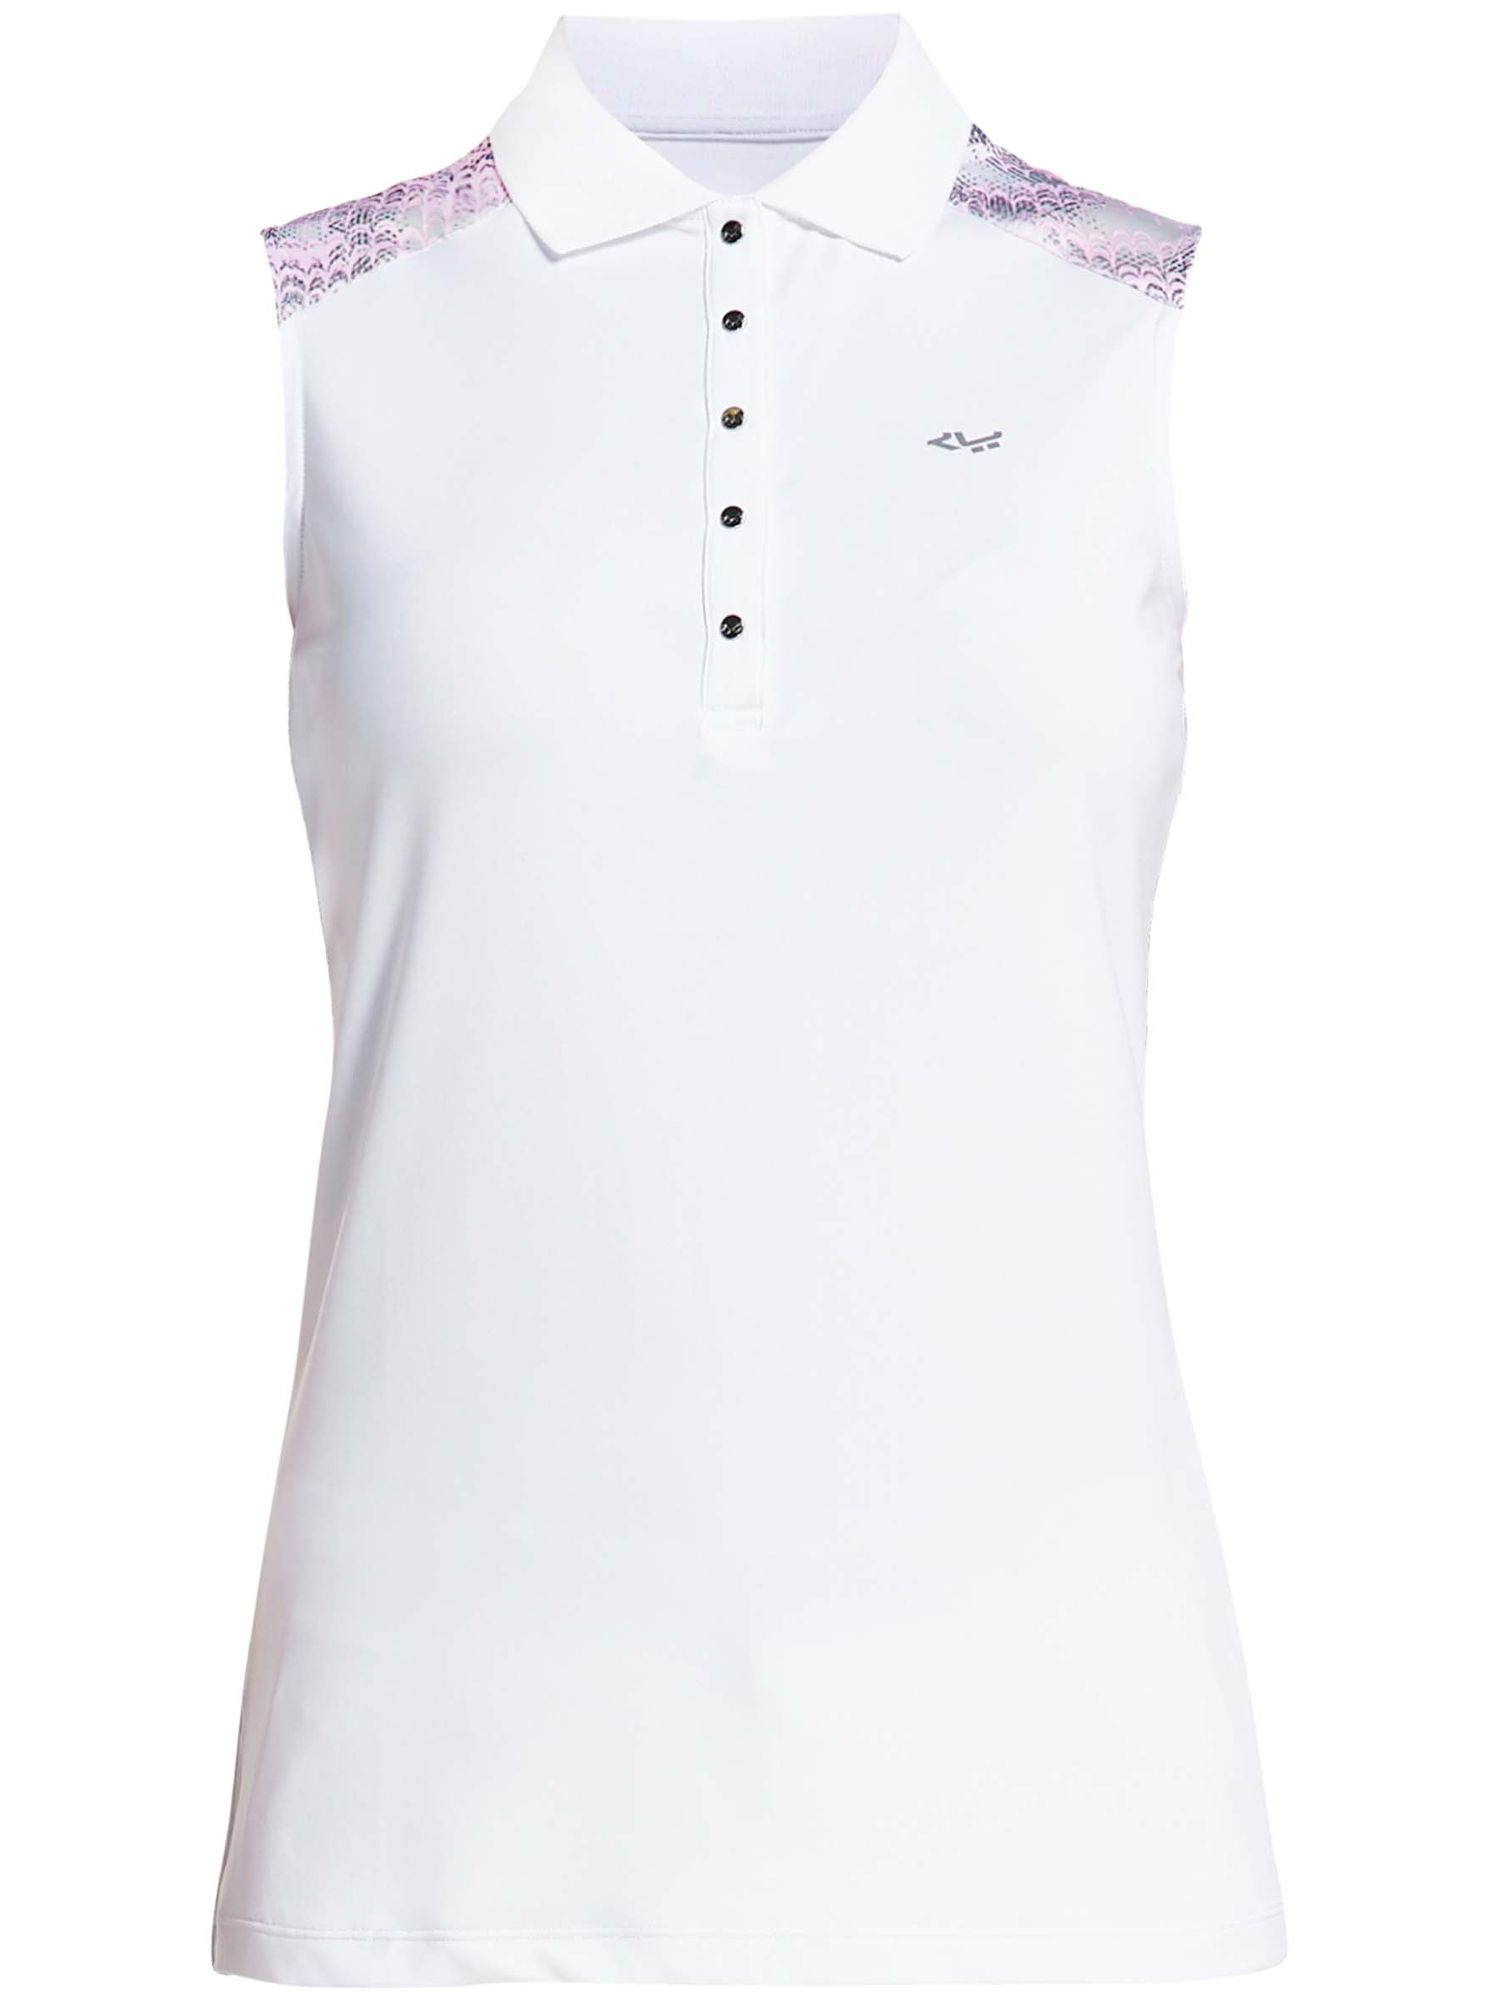 Rohnisch Print Sleeveless Polo, 161 Cherry Blossom